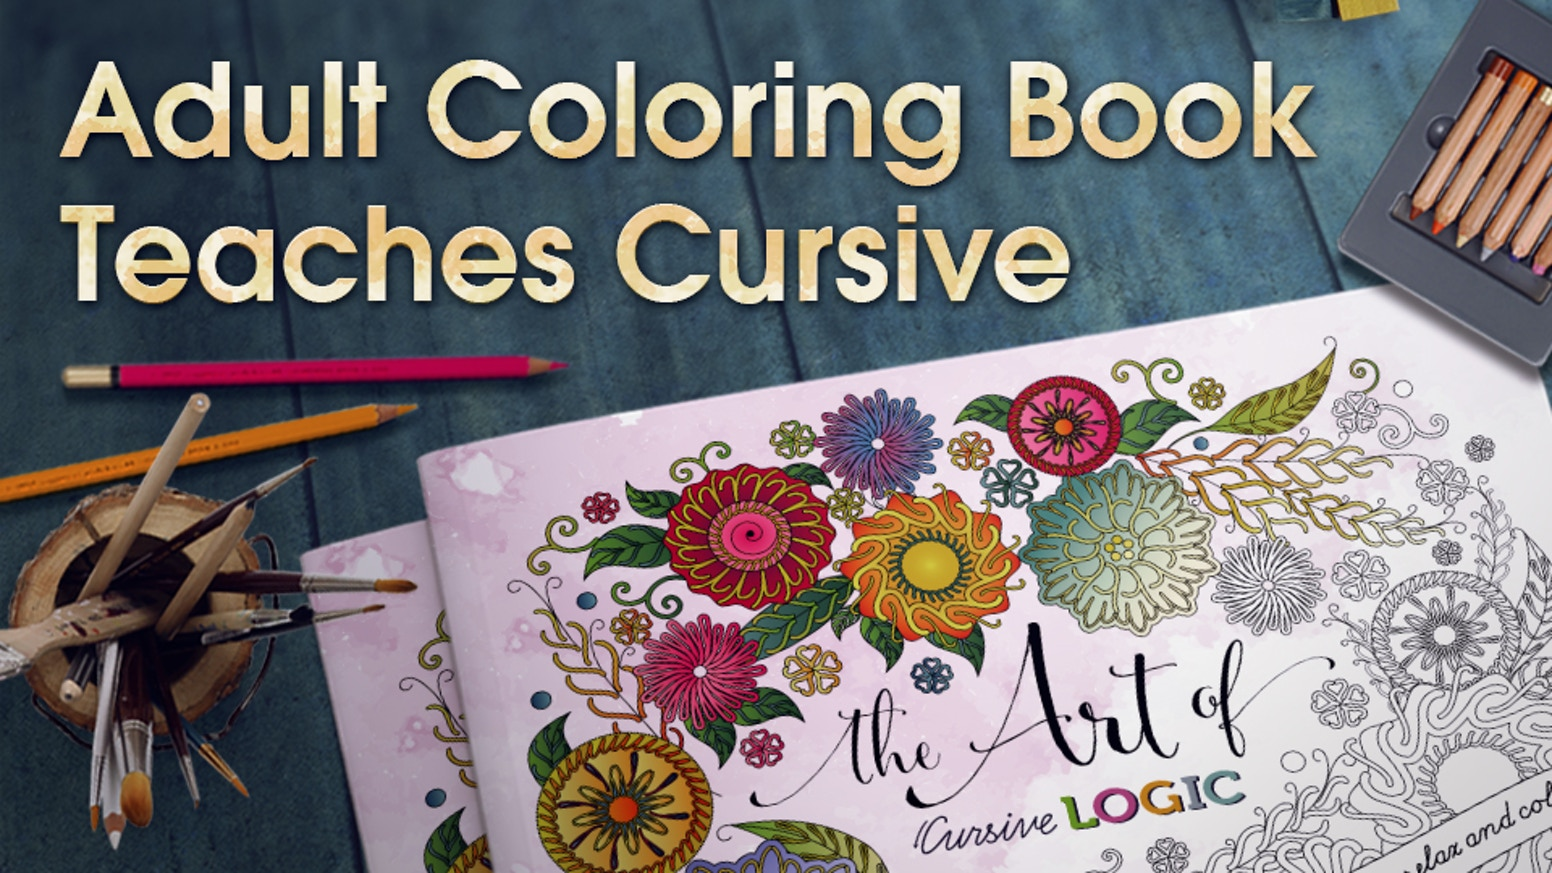 A revolutionary handwriting instruction method artfully woven into a relaxing, adult coloring book. Use the promo code KICK to get the Kickstarter price until the end of the month when you pre-order!